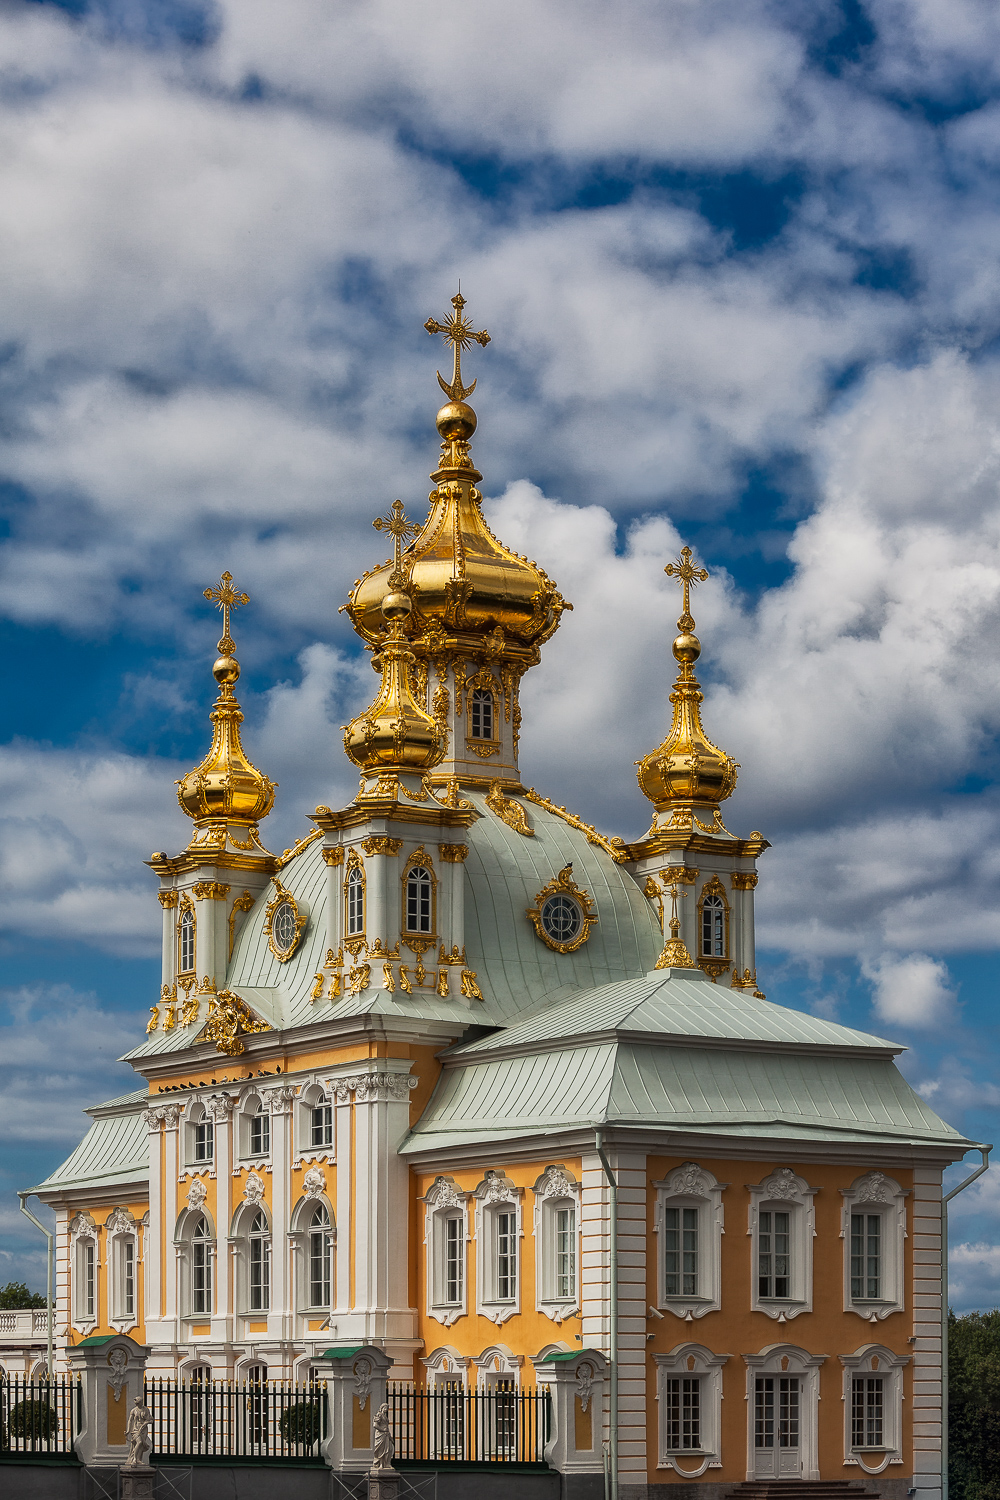 Spectacular domes   , gleaming on a summer's day, set off a magnificent building at    Peterhof Summer Palace    near    St. Petersburg, Russia   .